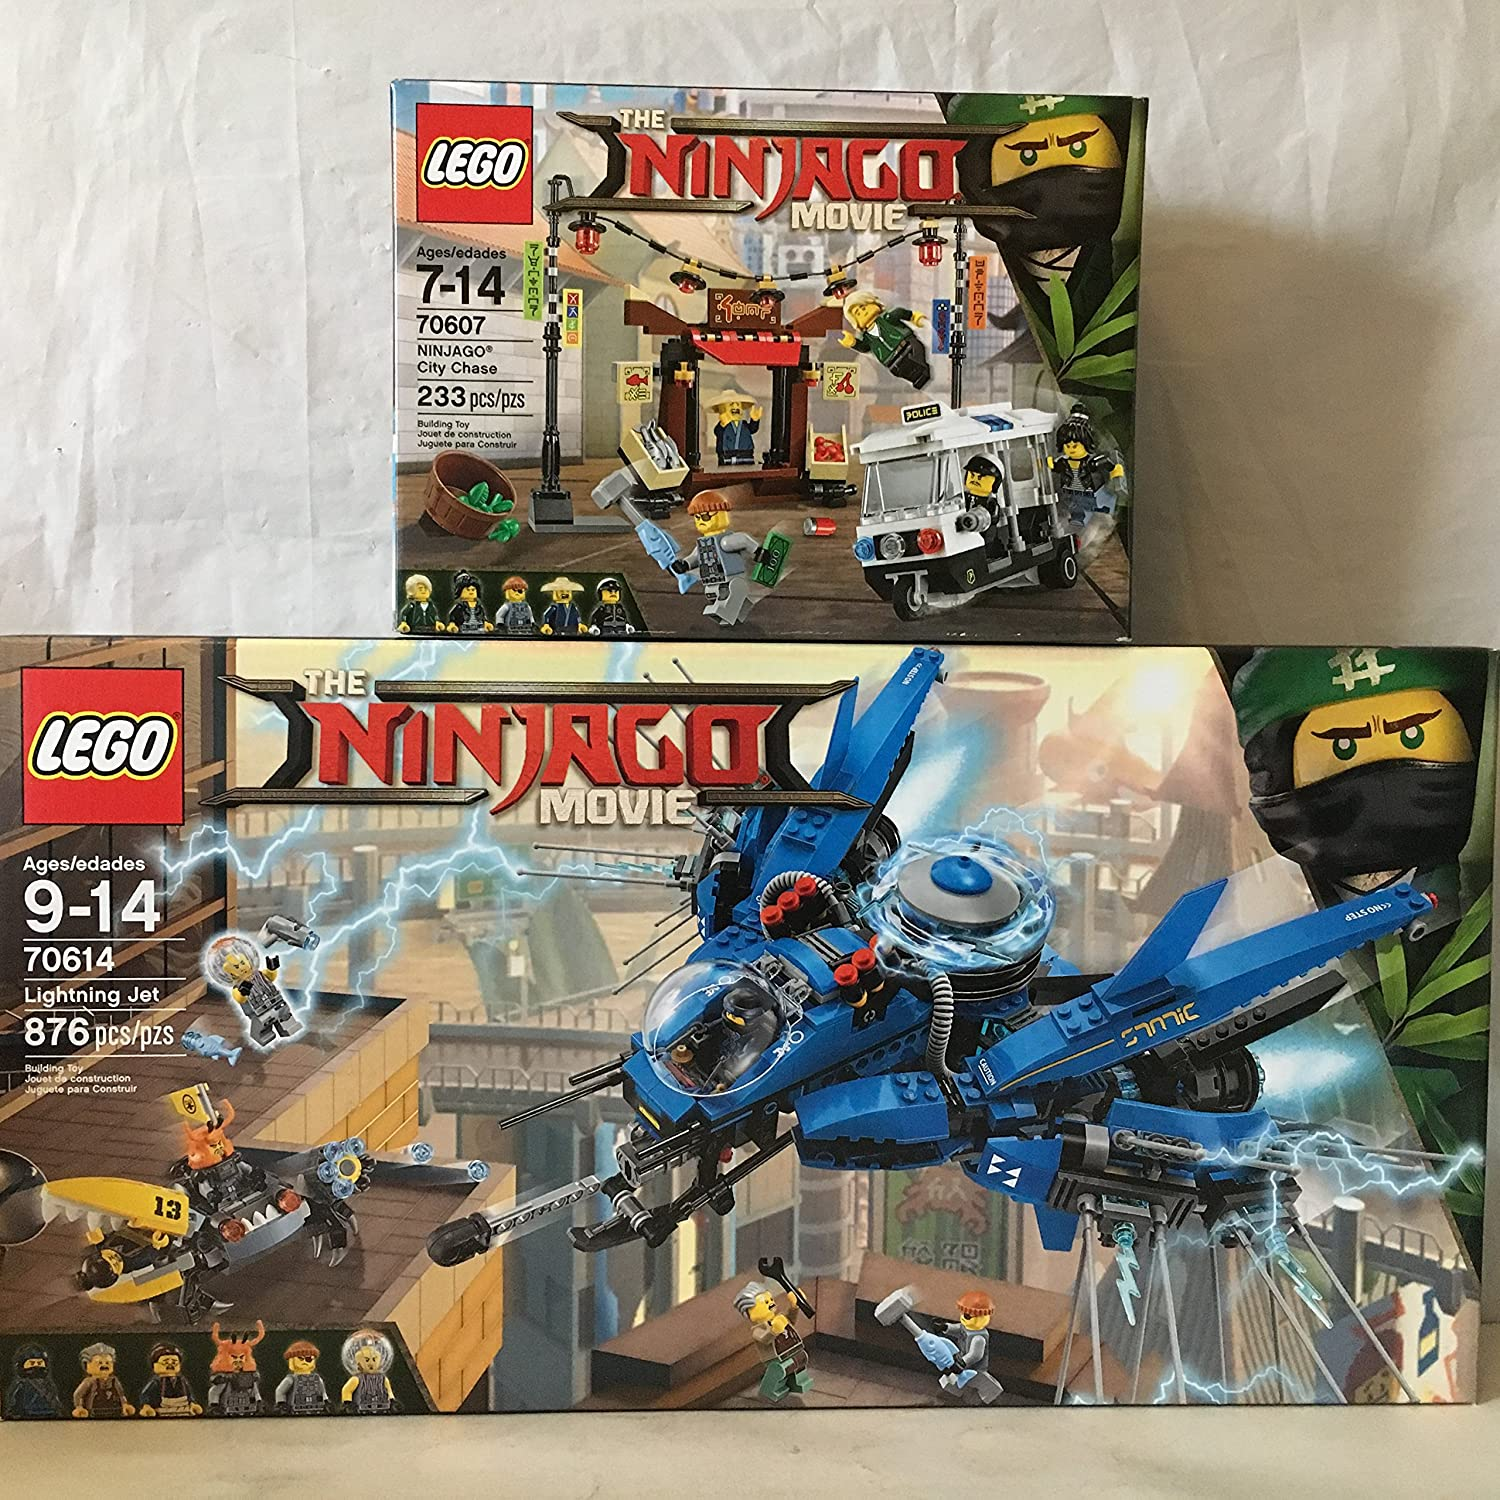 LEGO The Ninjago Movie Jelly with Disc Launcher from Set # 70614 Lightning Jet